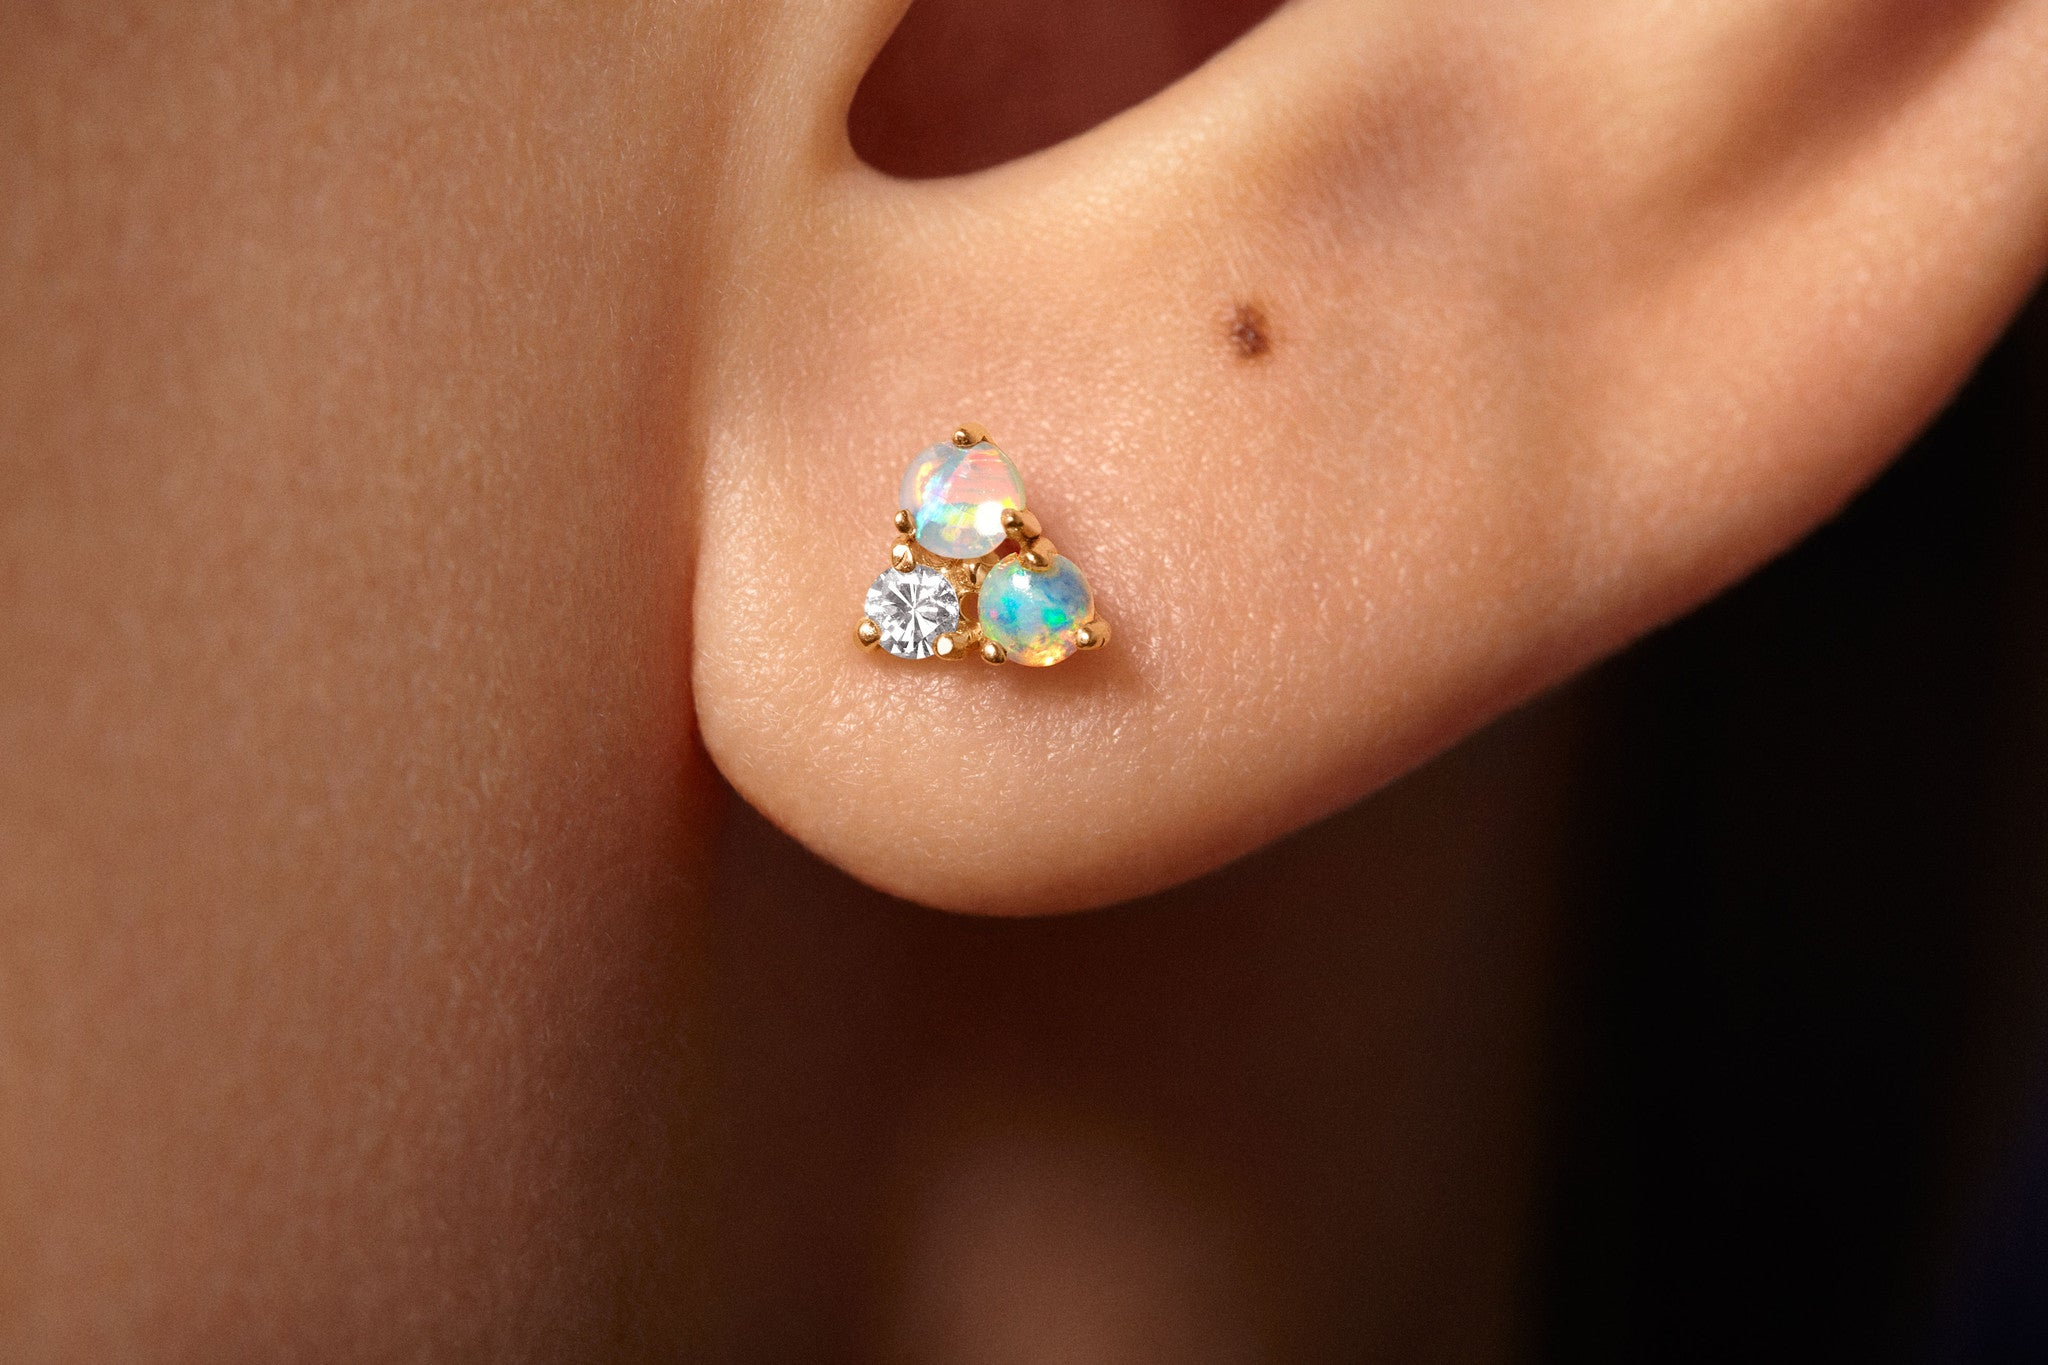 product earrings body identity opalstuds piercing braided opal